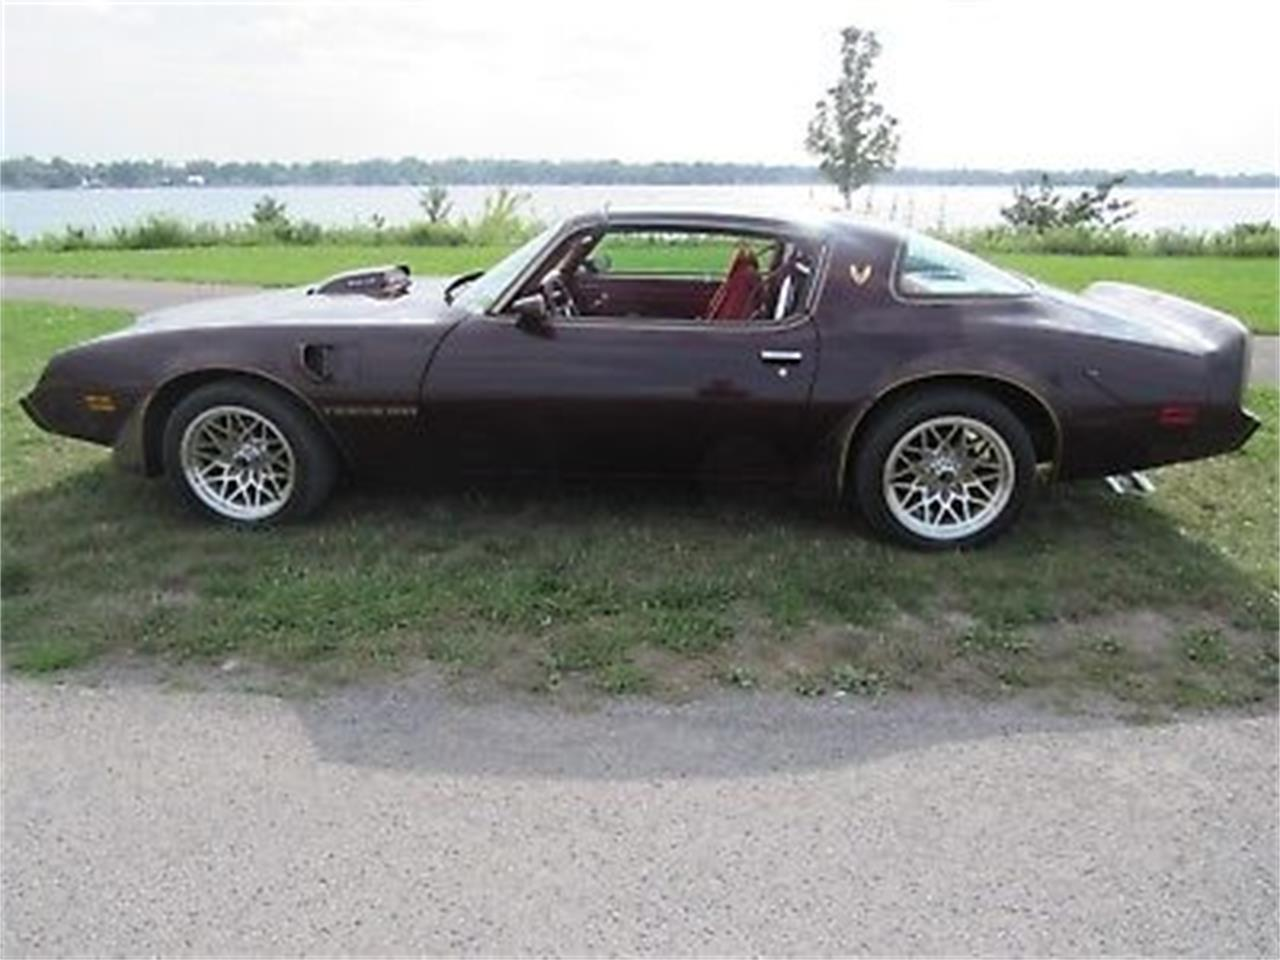 Large Picture of 1980 Pontiac Firebird Trans Am located in New York - $24,000.00 Offered by a Private Seller - OCWB